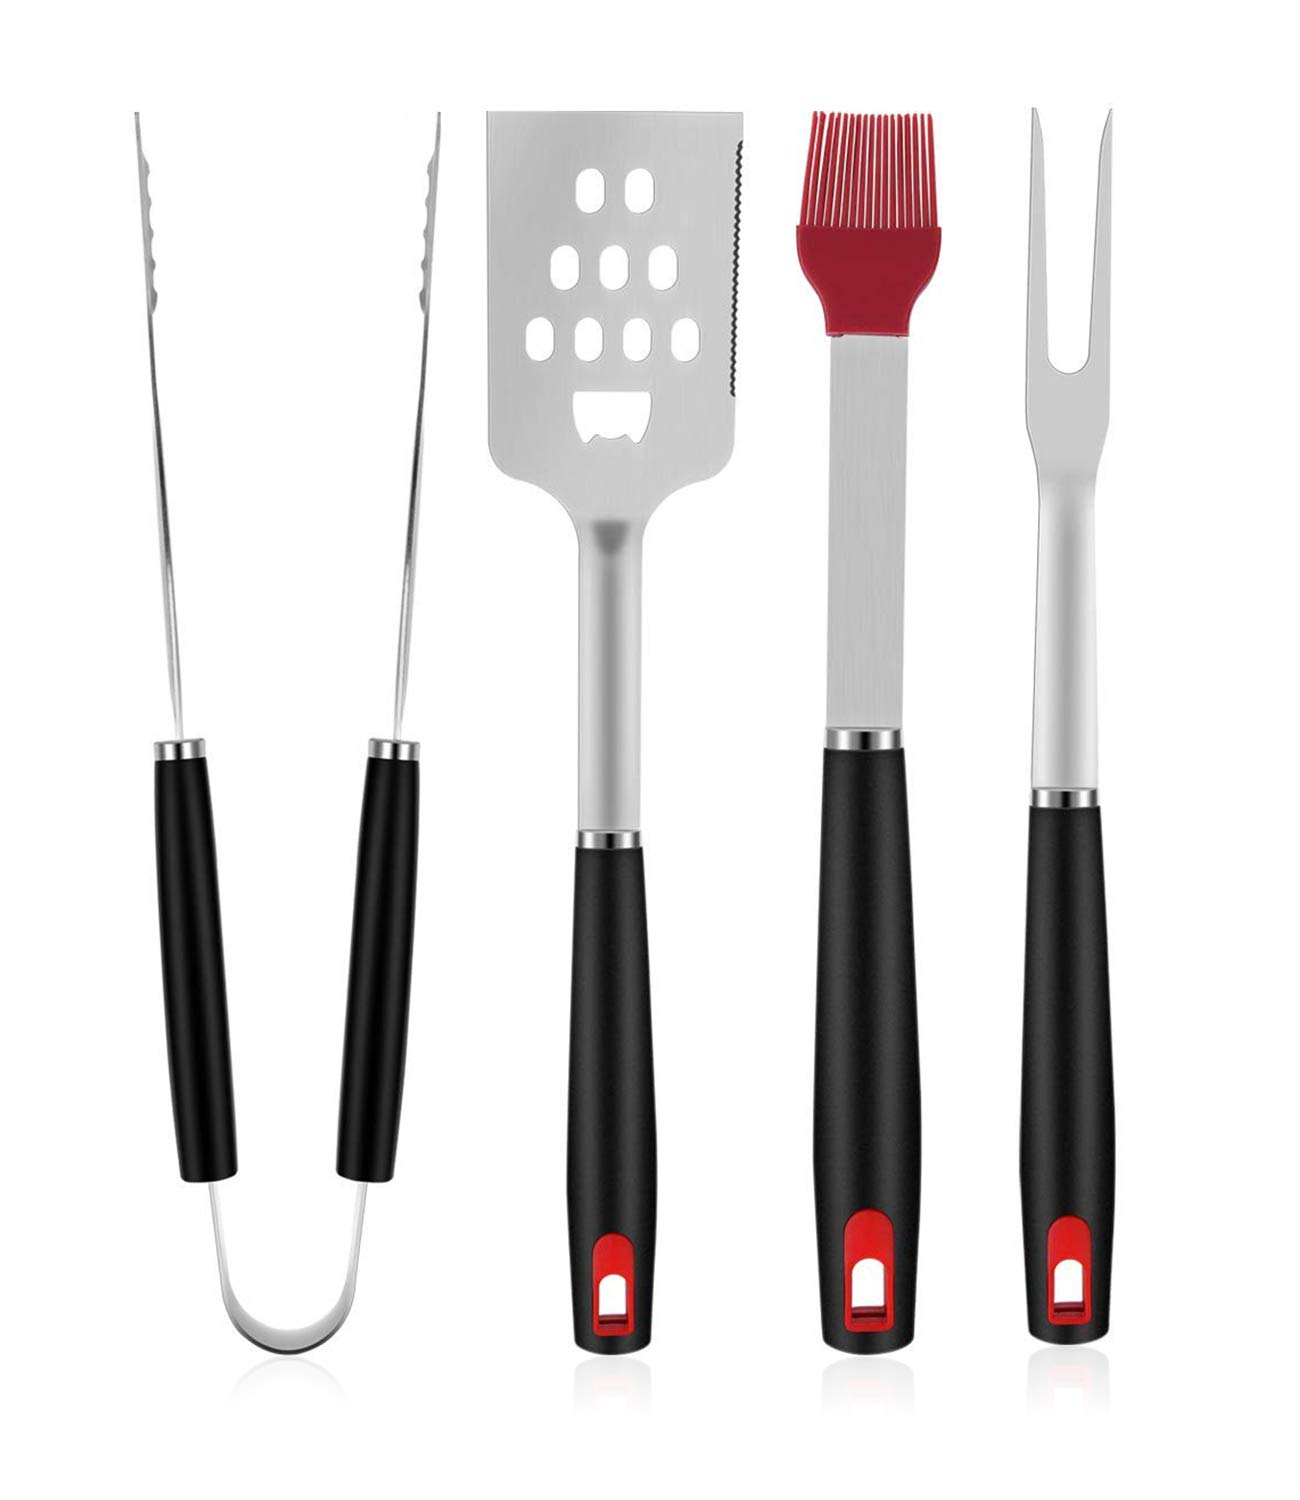 """Yasmine Grill Brush with Scraper - Bristle Free 18"""" for Porcelain Grates Outdoor Stainless Steel Grill Cleaner Tool - BBQ Safe Scraper Barbeque Cleaning Accessories (4 Piece)"""